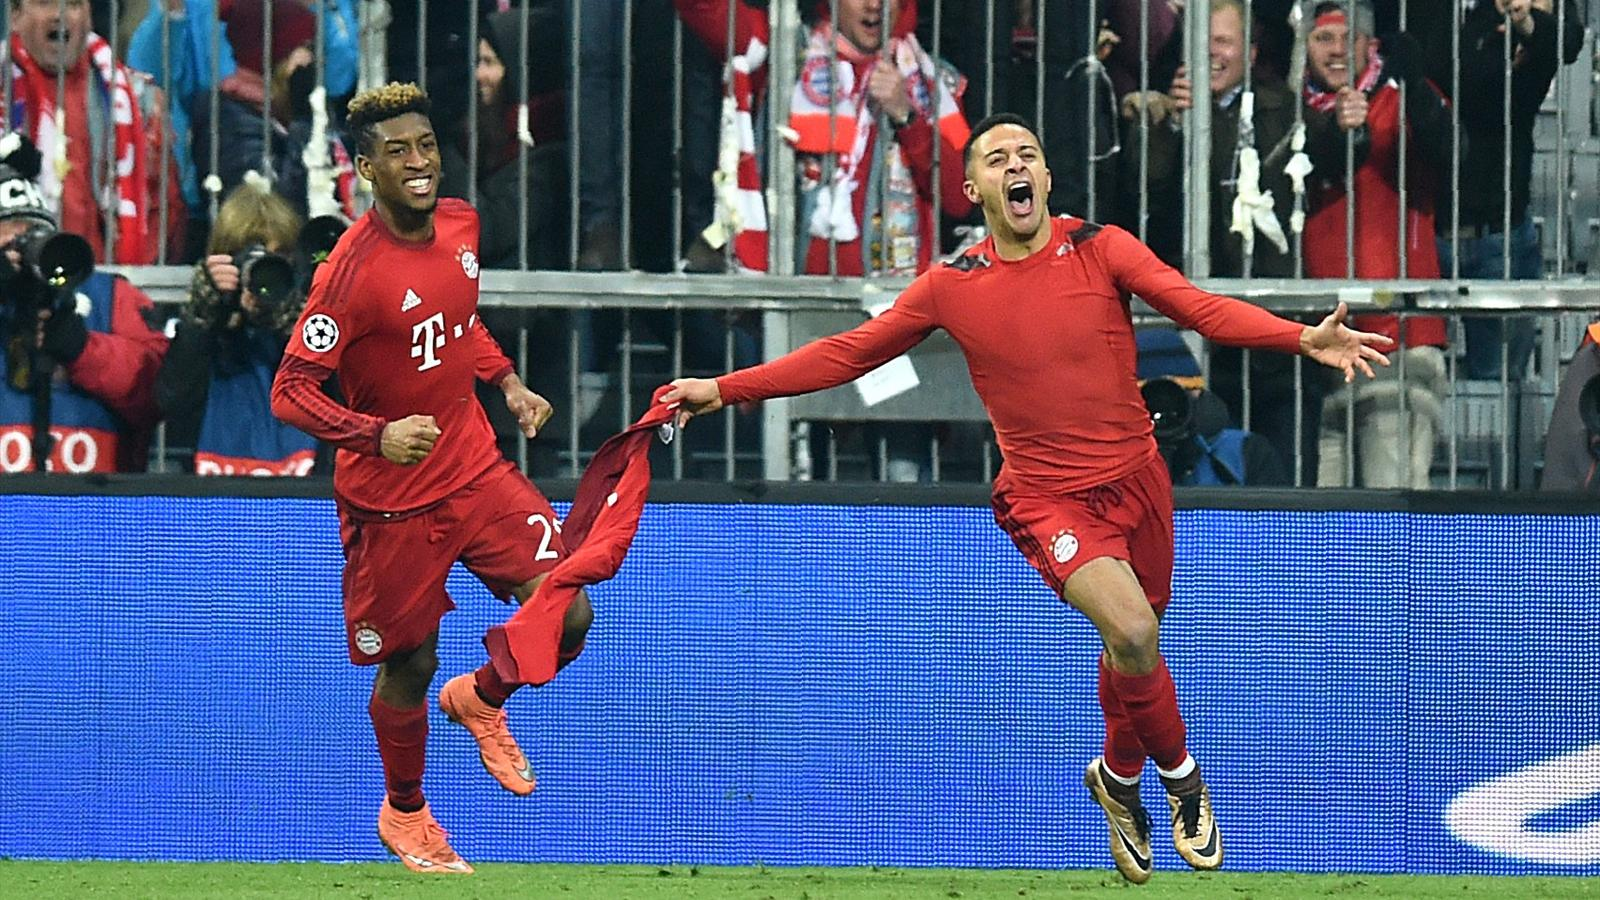 Bayern Munich come from two behind to beat Juventus and keep